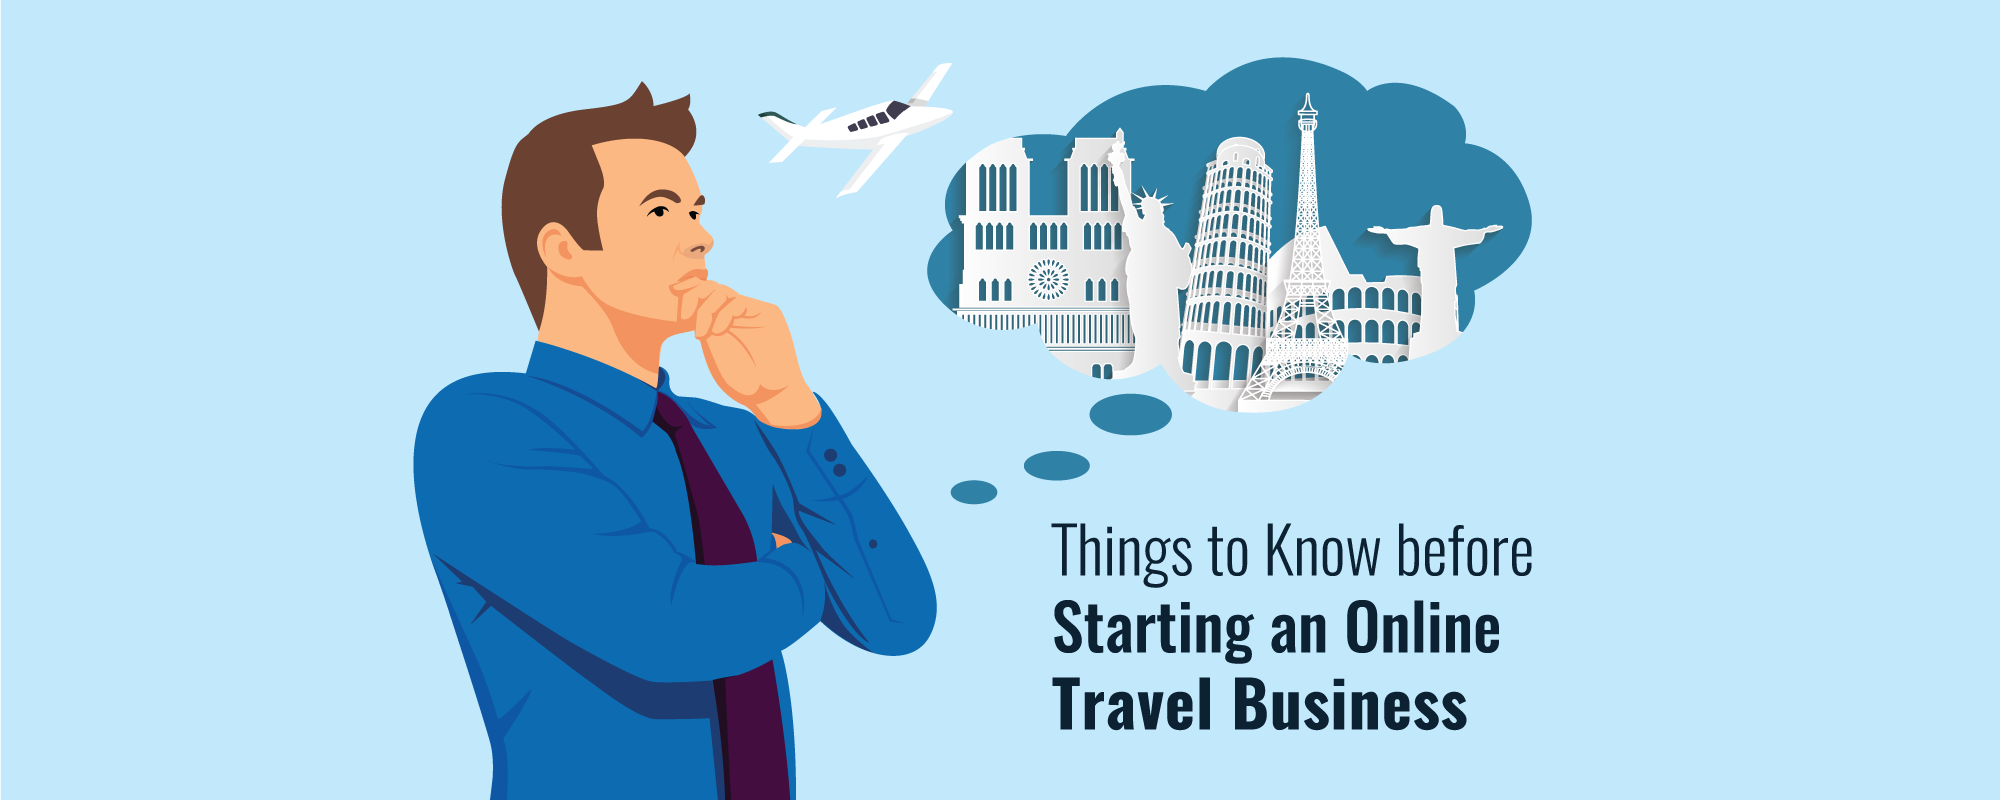 Things An Entrepreneur Ought To Know Before Planning a Travel Based Start-Up